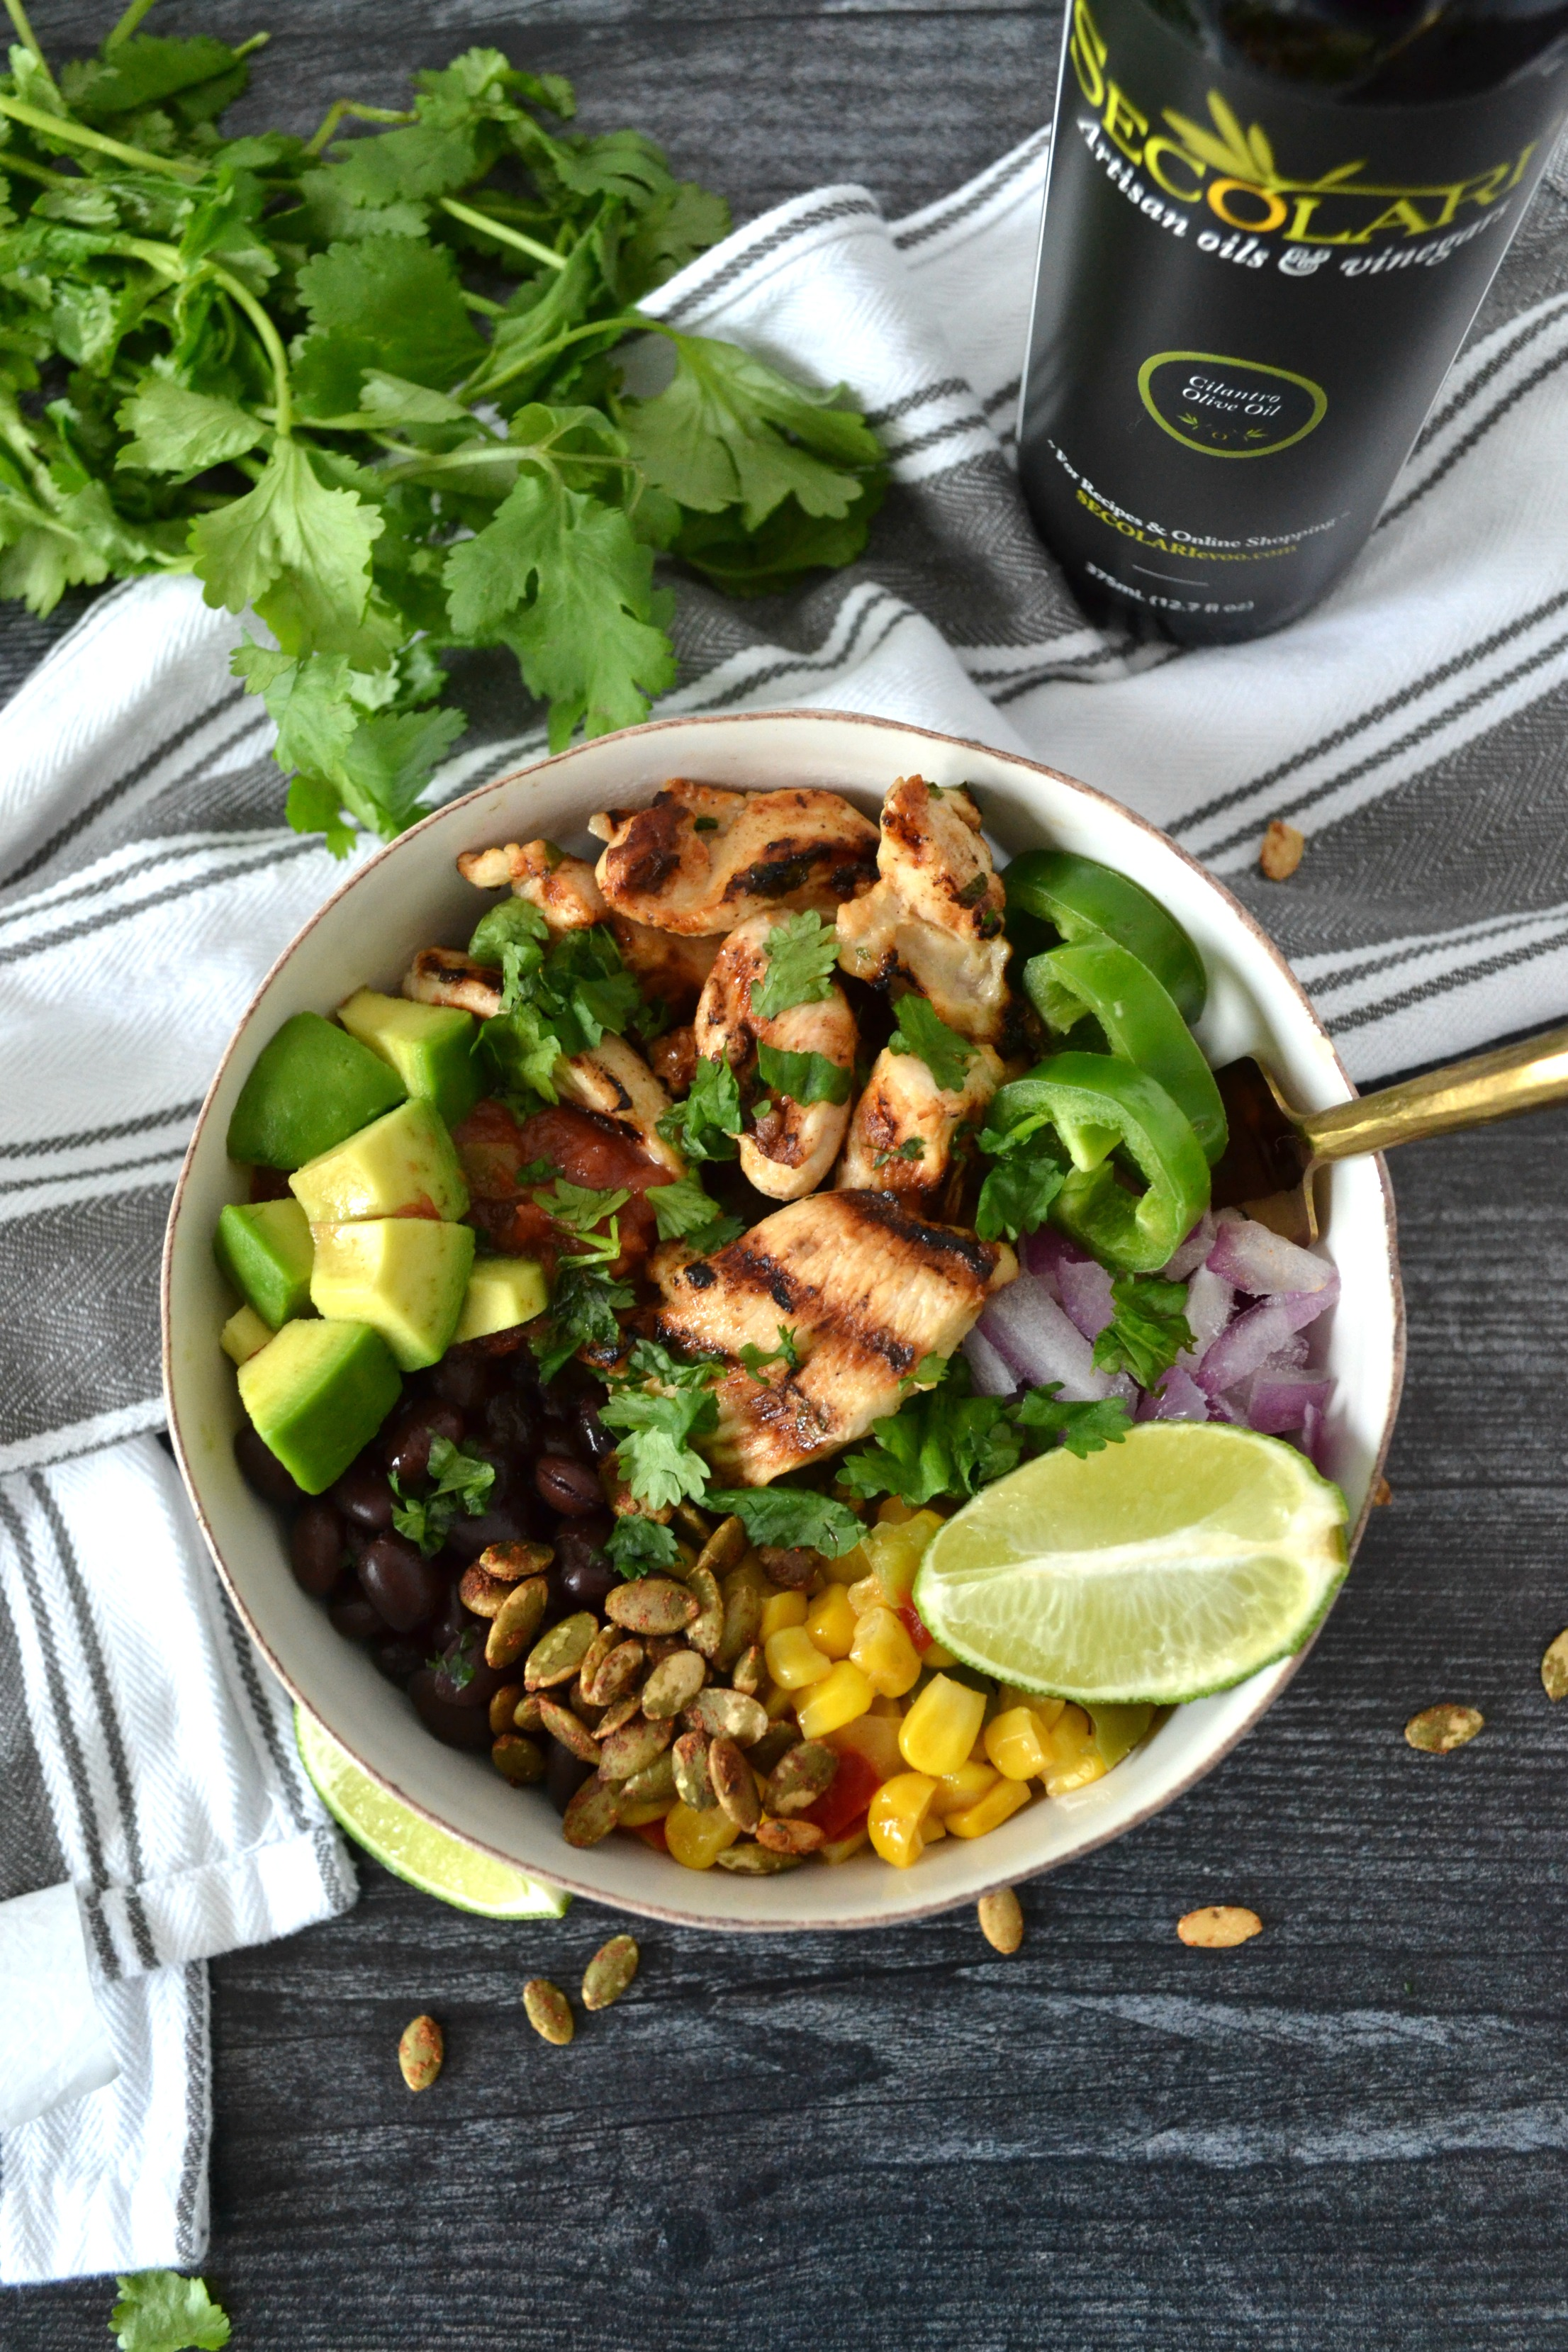 Cilantro Lime Chicken Taco Bowls are a perfect weeknight meal to celebrate your favorite night of the week: Taco Tuesday! Using Secolari Artisan Cilantro Olive Oil, the rich flavors of pressed cilantro in the grilled chicken really come to life! #ad